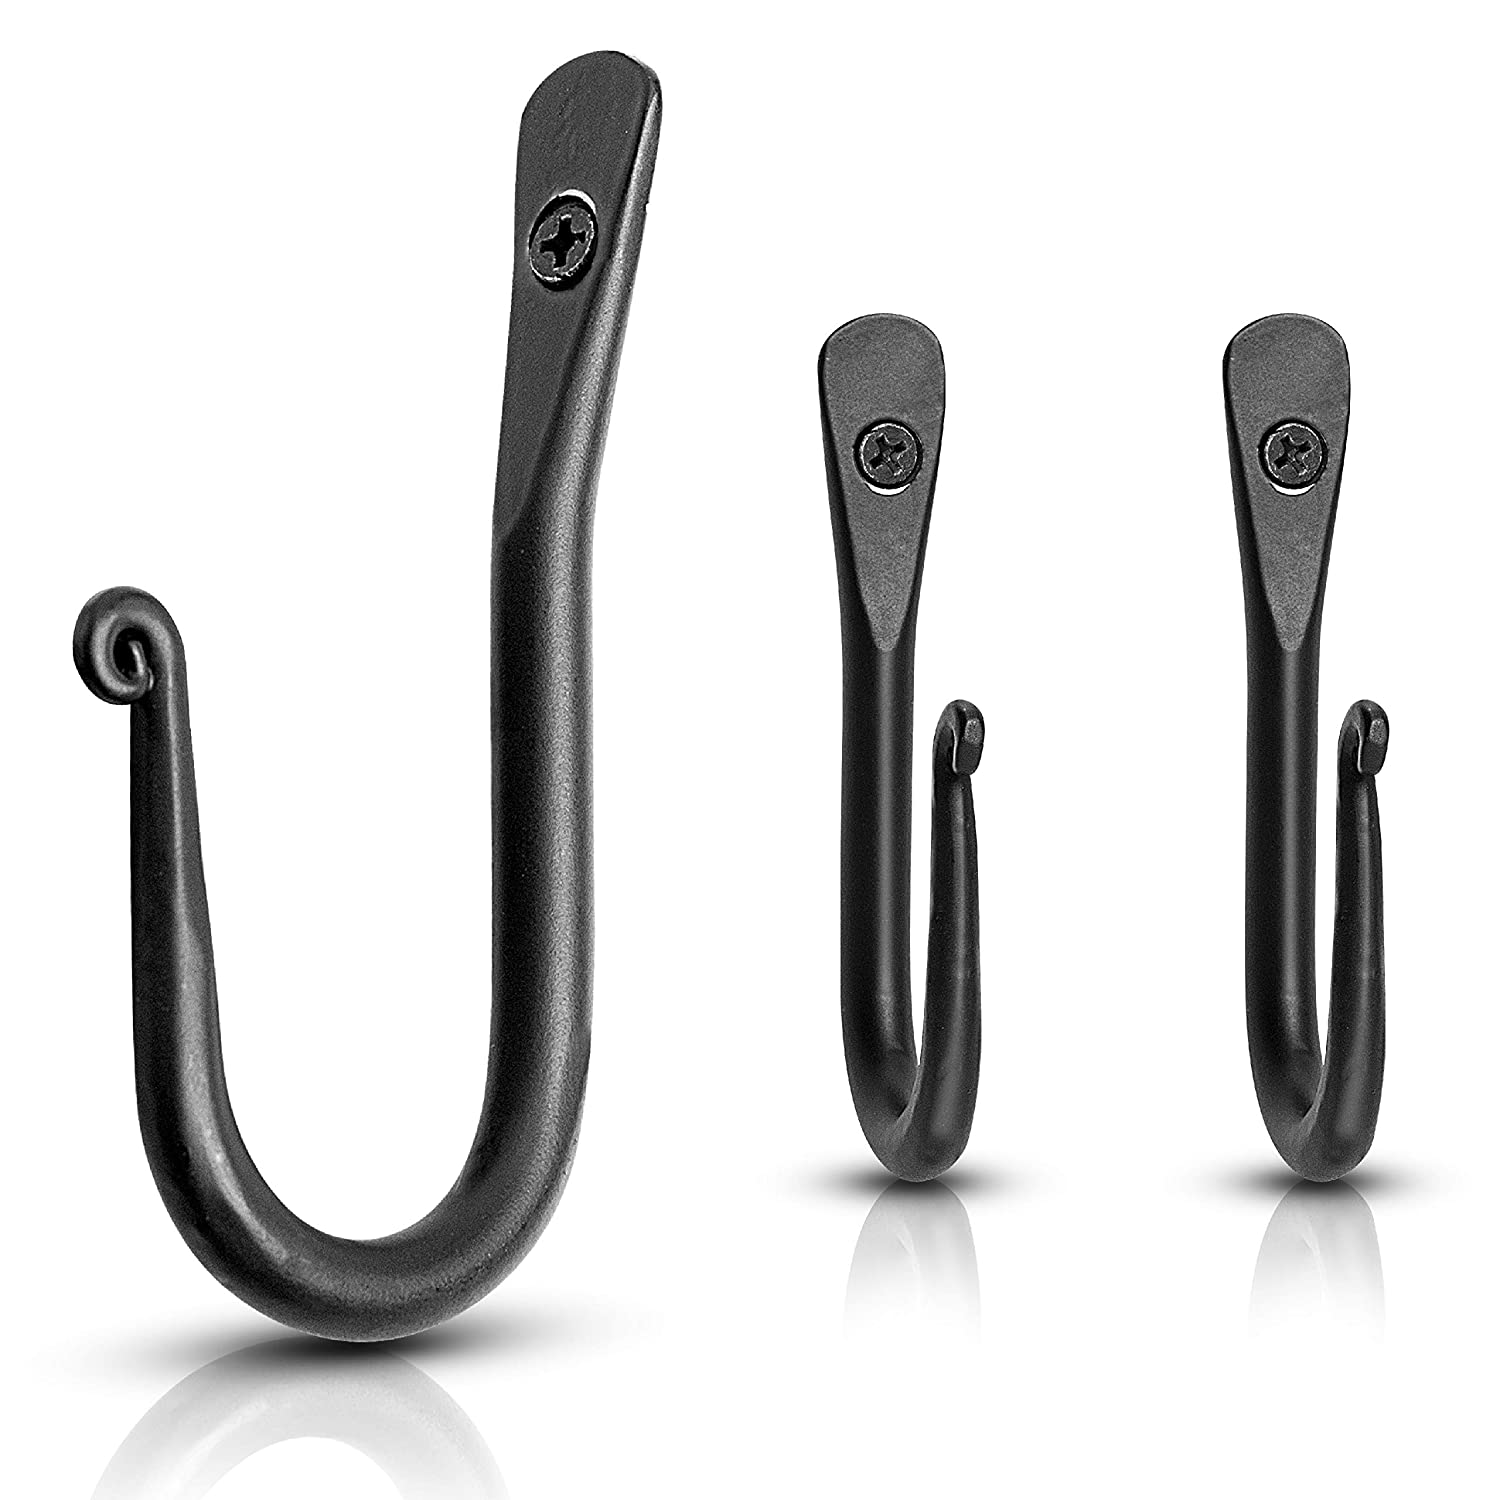 Marie Décor Blacksmith Handmade Simple Wall Mounted Wrought Iron Hooks - Set of 3 (Black)